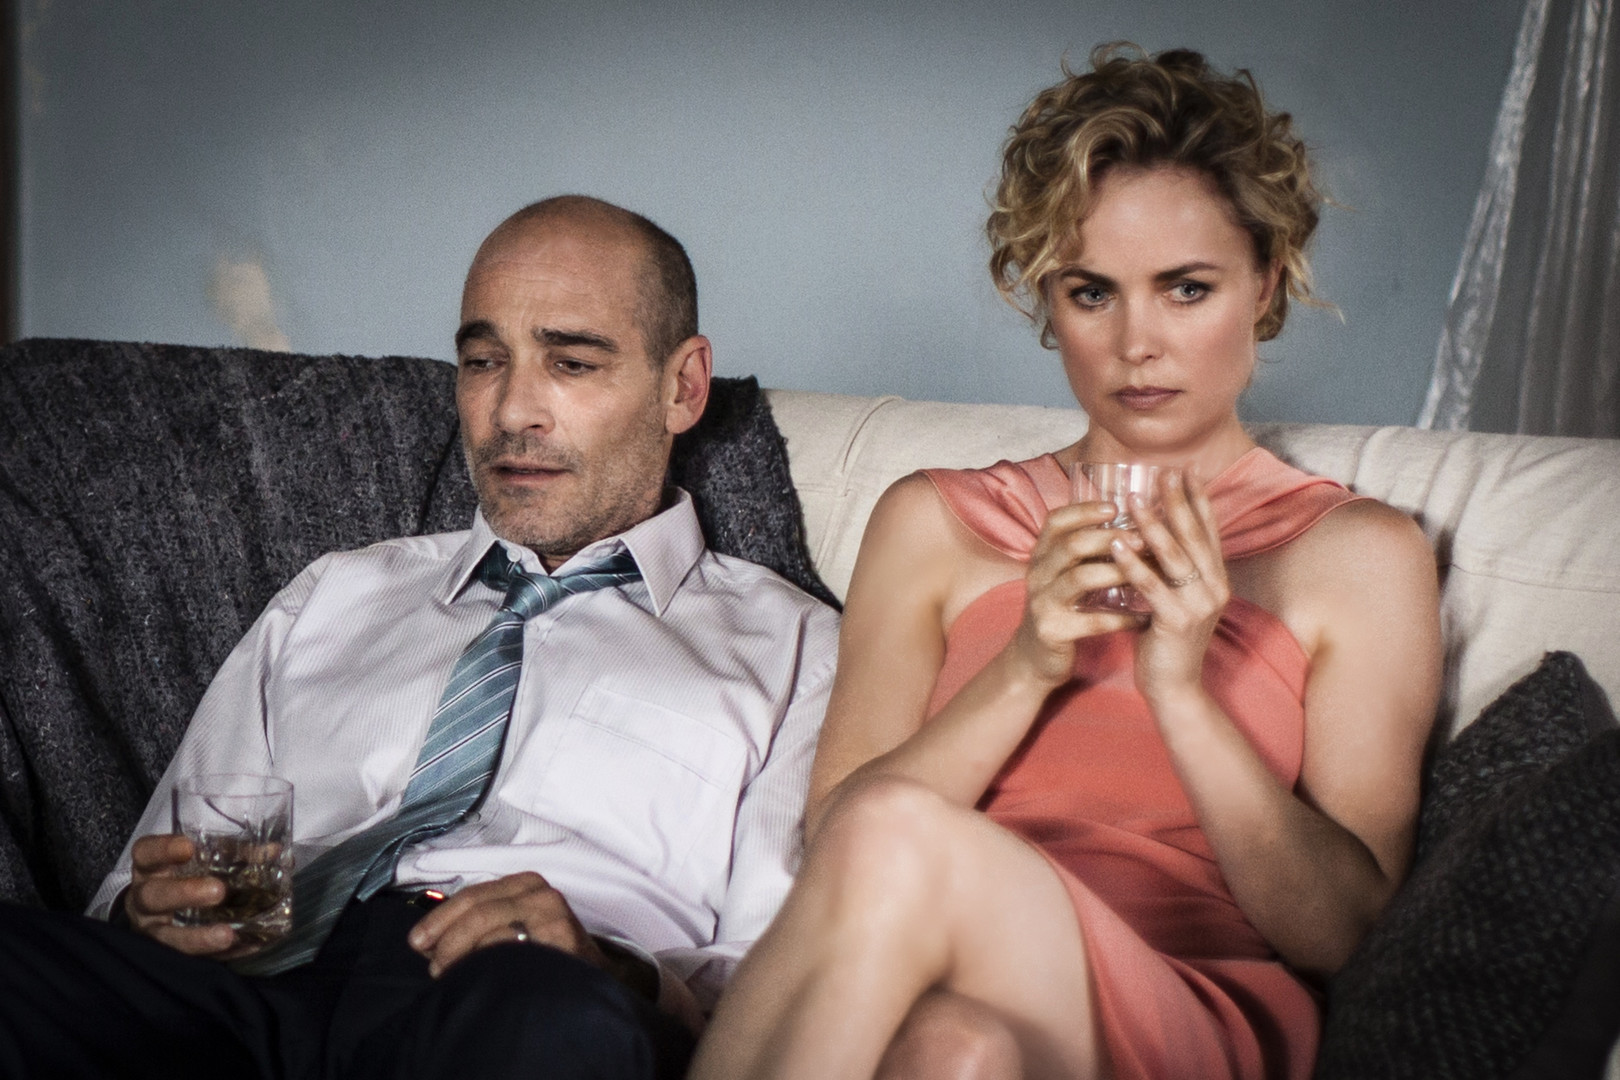 Photo 1 Ray_Jean-Marc_Barr__Iris_Radha_Mitchell_on_the_couch_Photo_-_Mark_Rogers.jpg